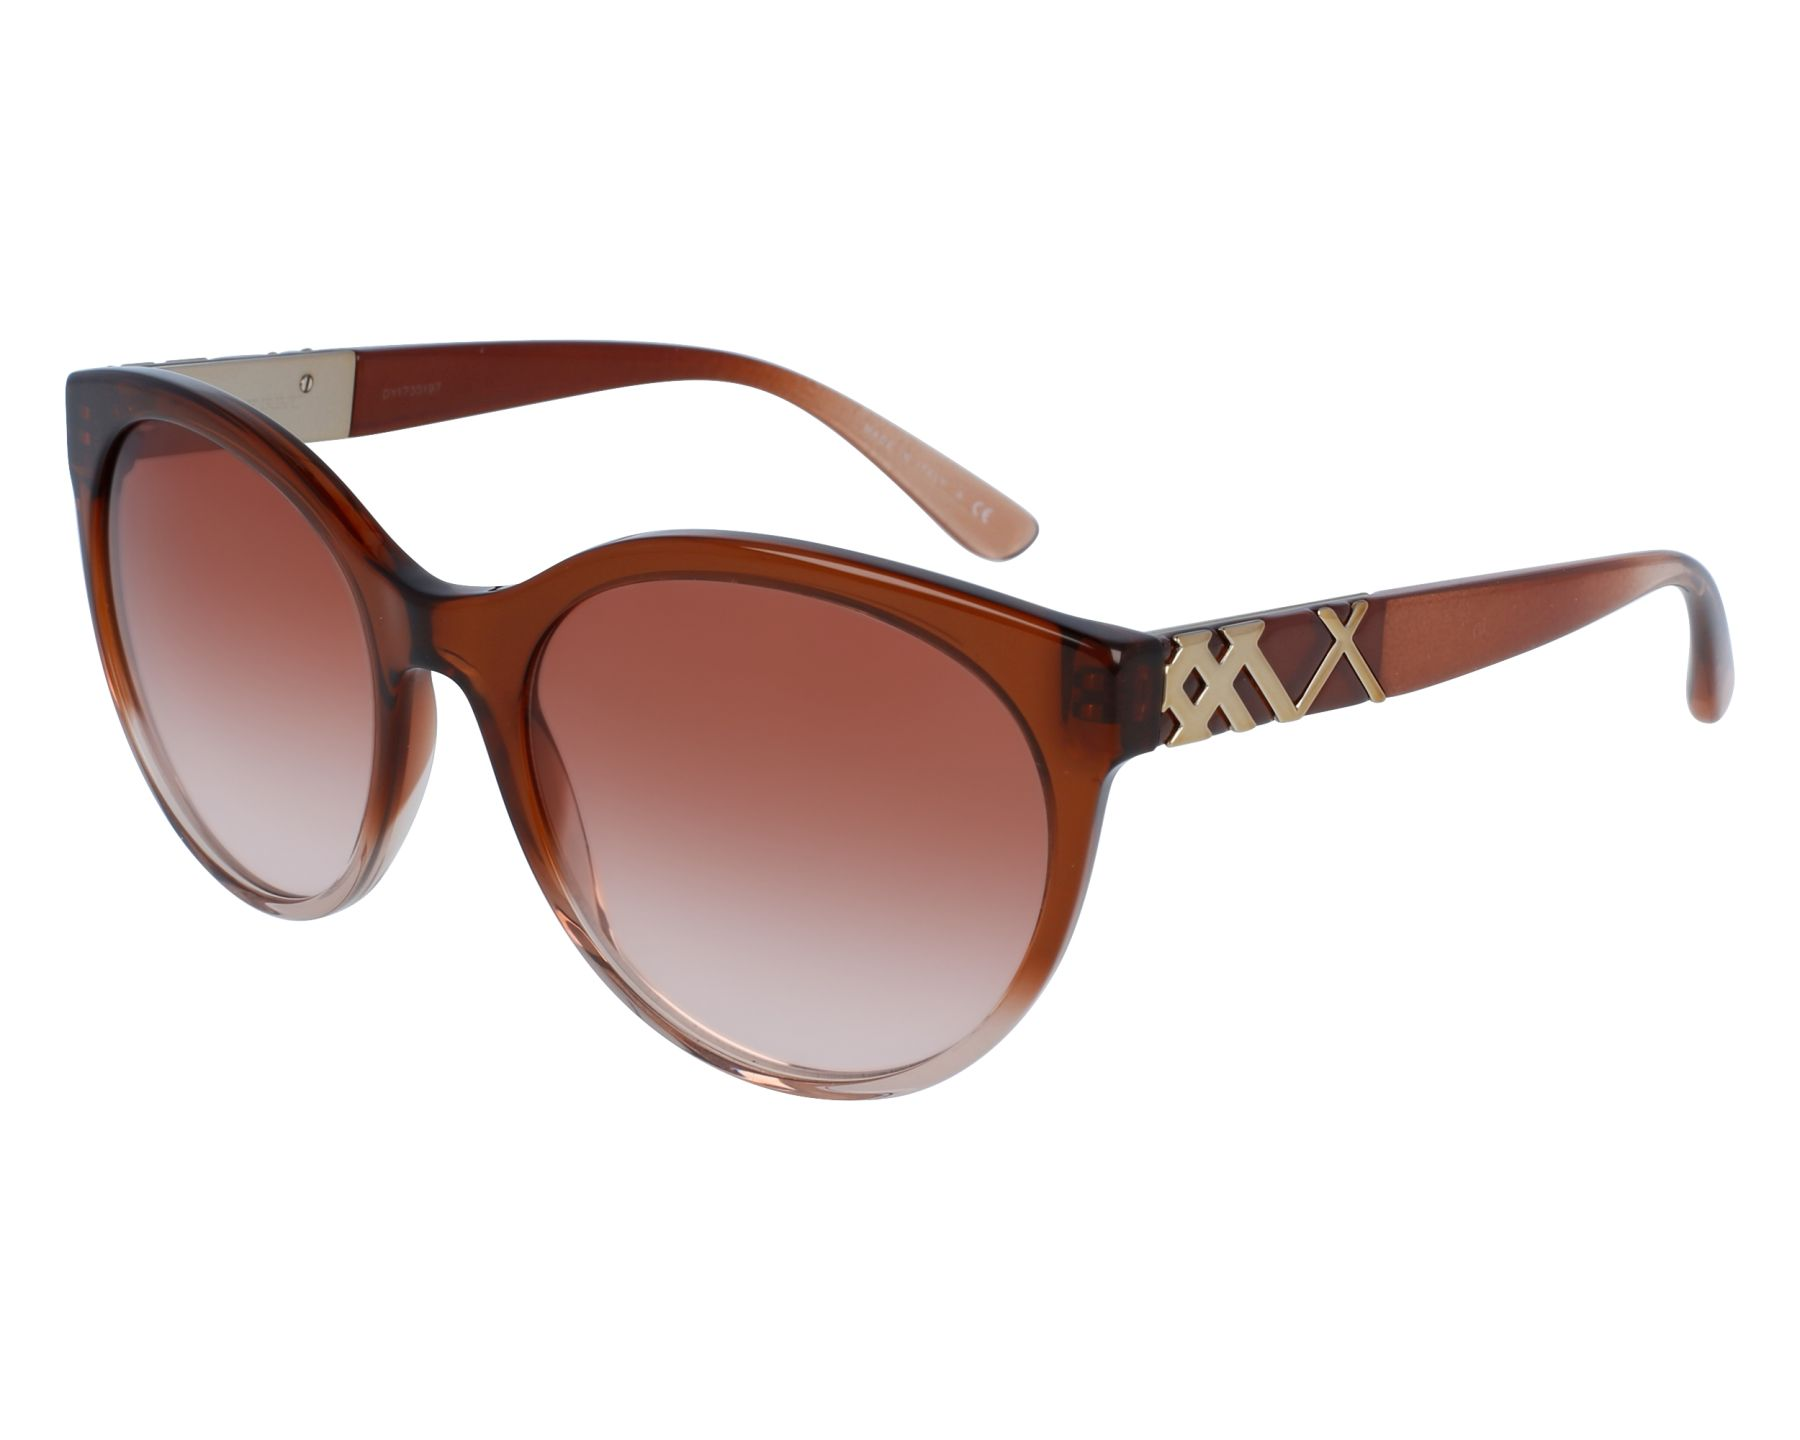 88bba1b0d3eb Sunglasses Burberry BE-4236 3608/13 56-19 Brown Silver front view